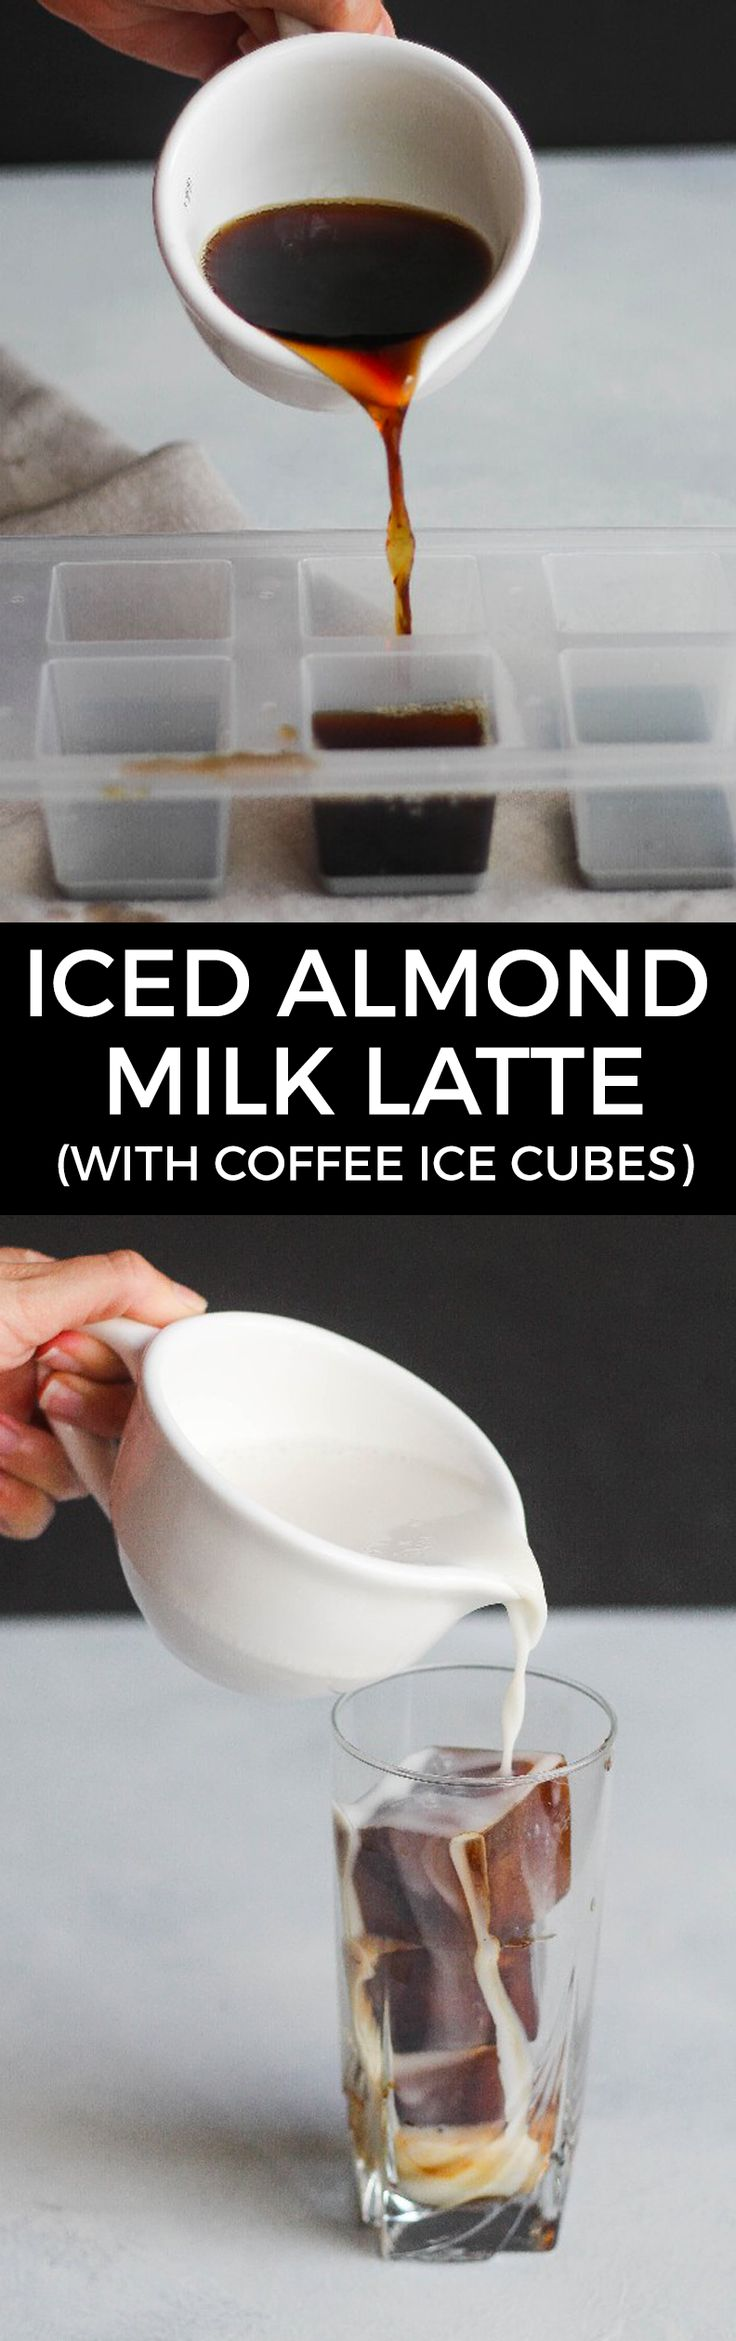 Iced Almond Milk Latte with Coffee Ice Cubes